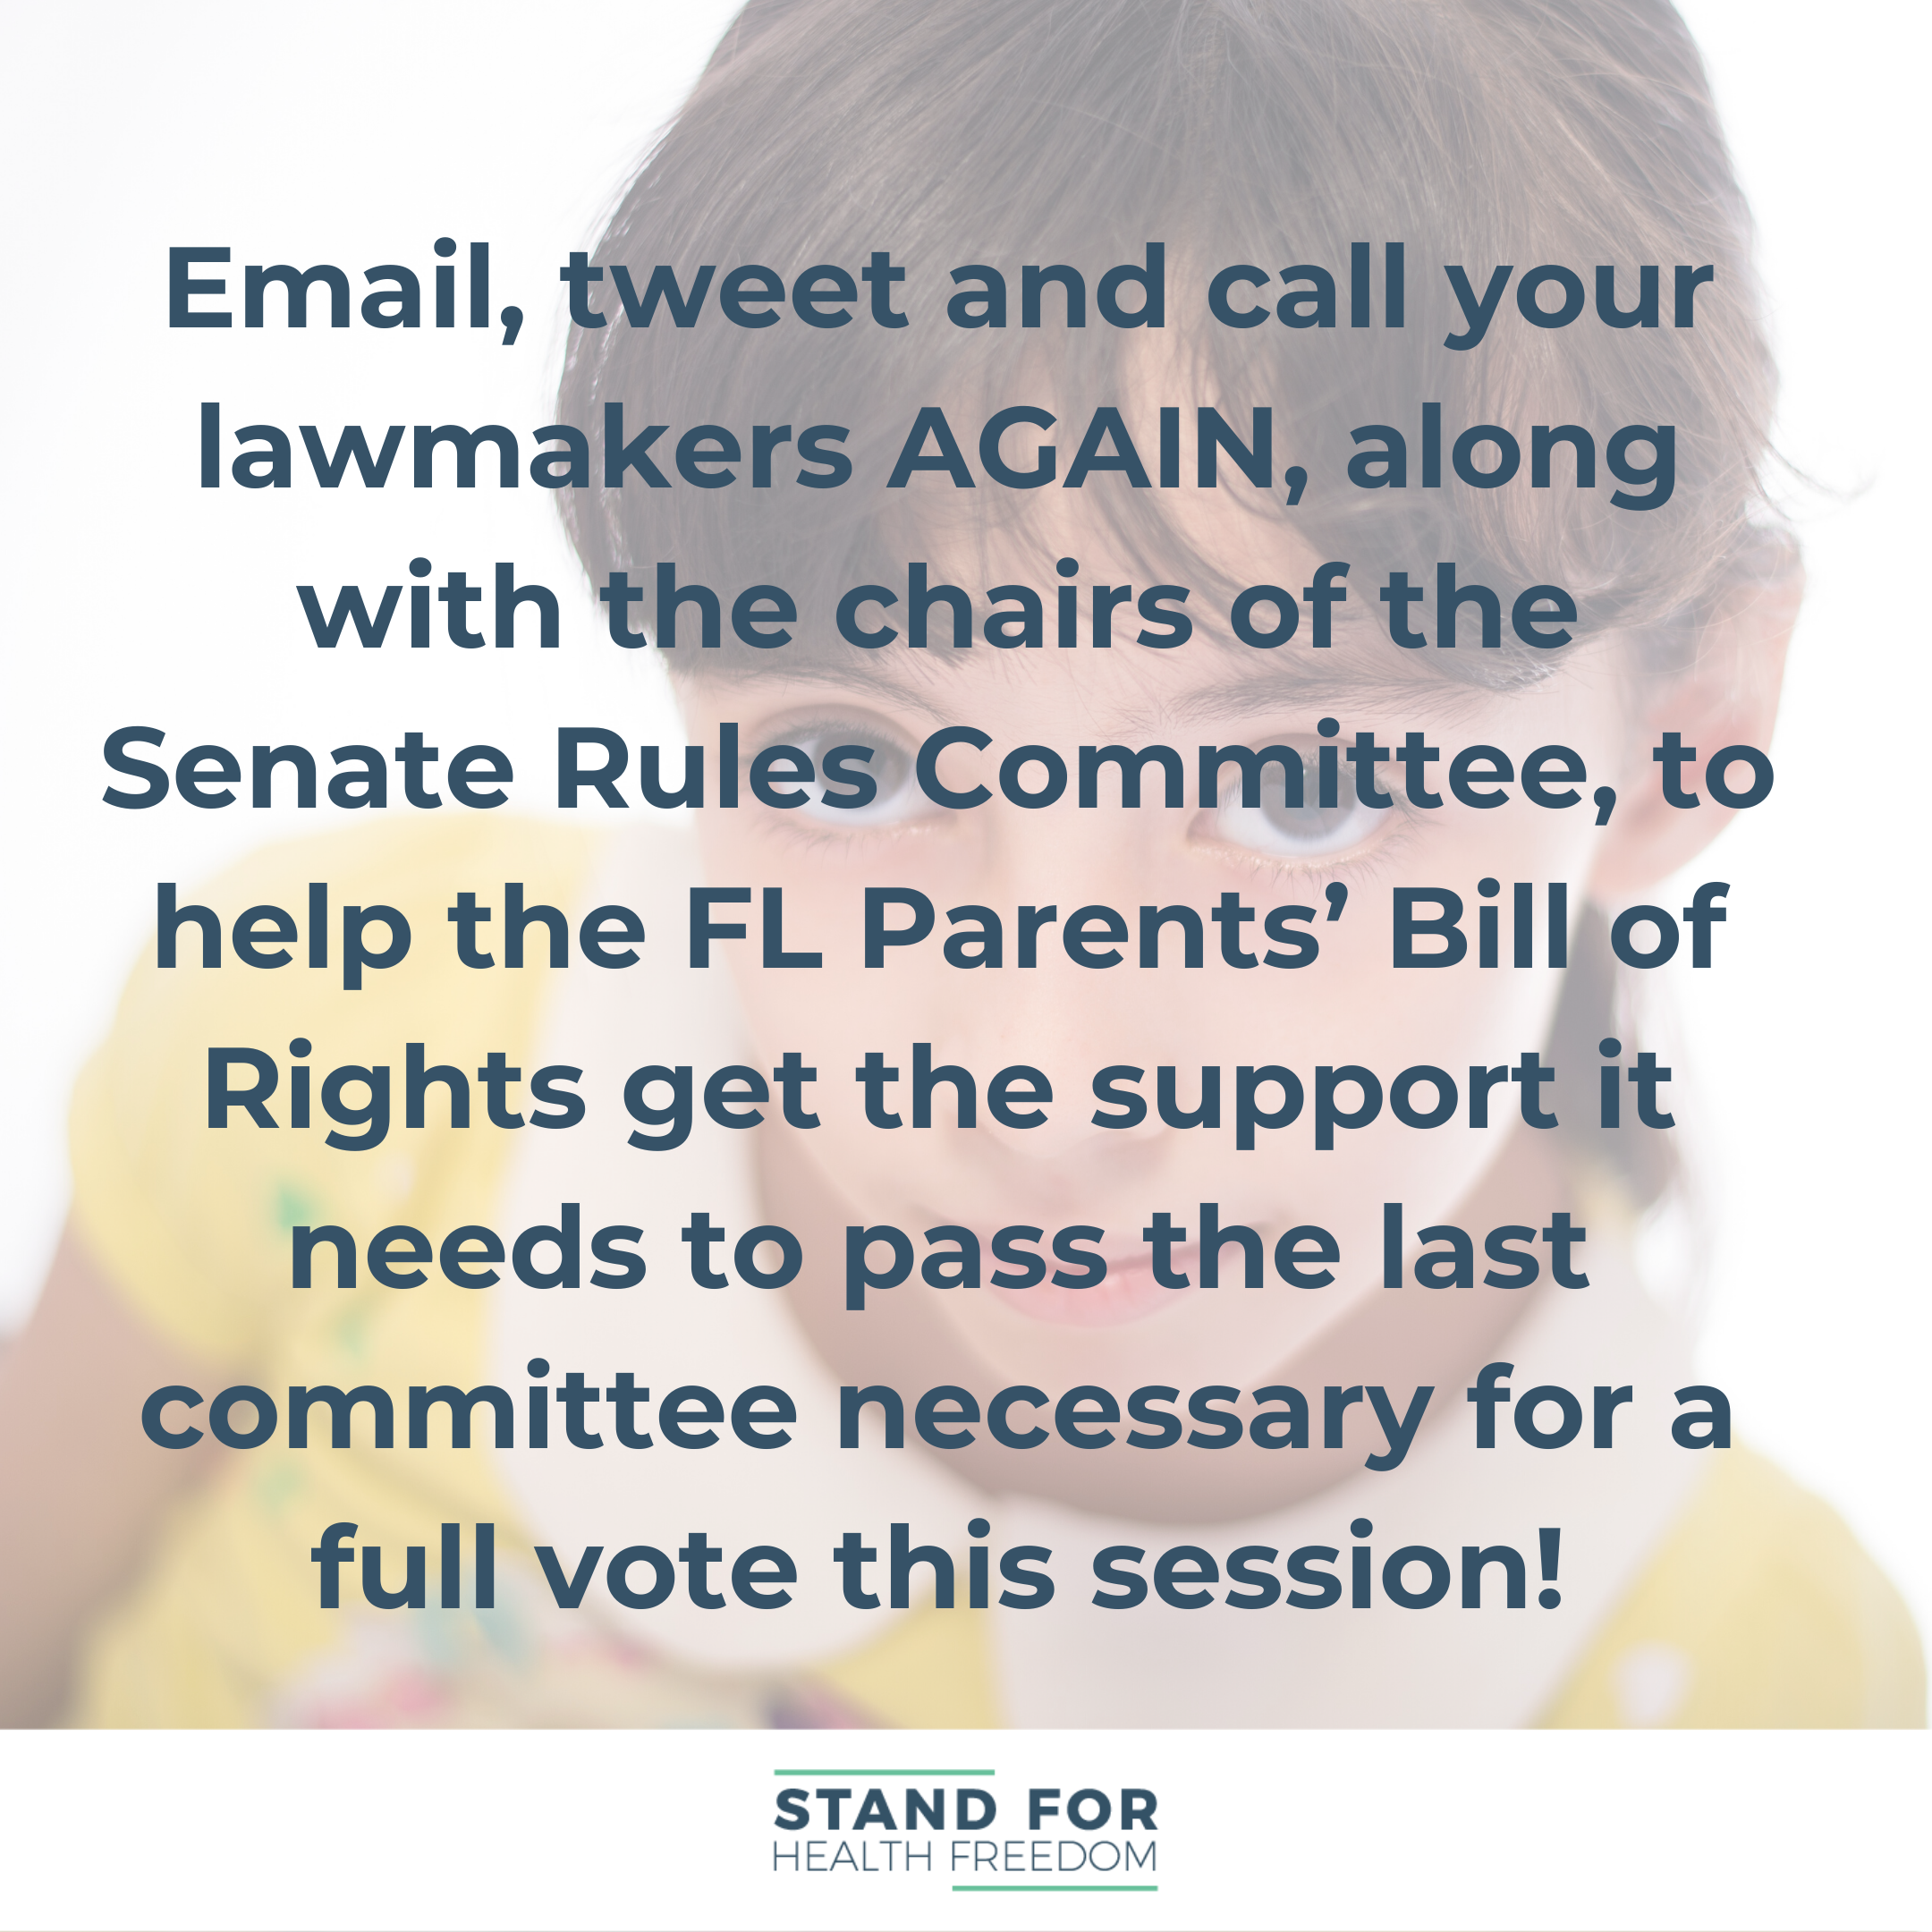 Email, tweet and call your lawmakers AGAIN, along with the chairs of the senate rules committee, to help the FL Parents' Bill of Rights get the support it needs to pass the last committee necessary for a full vote